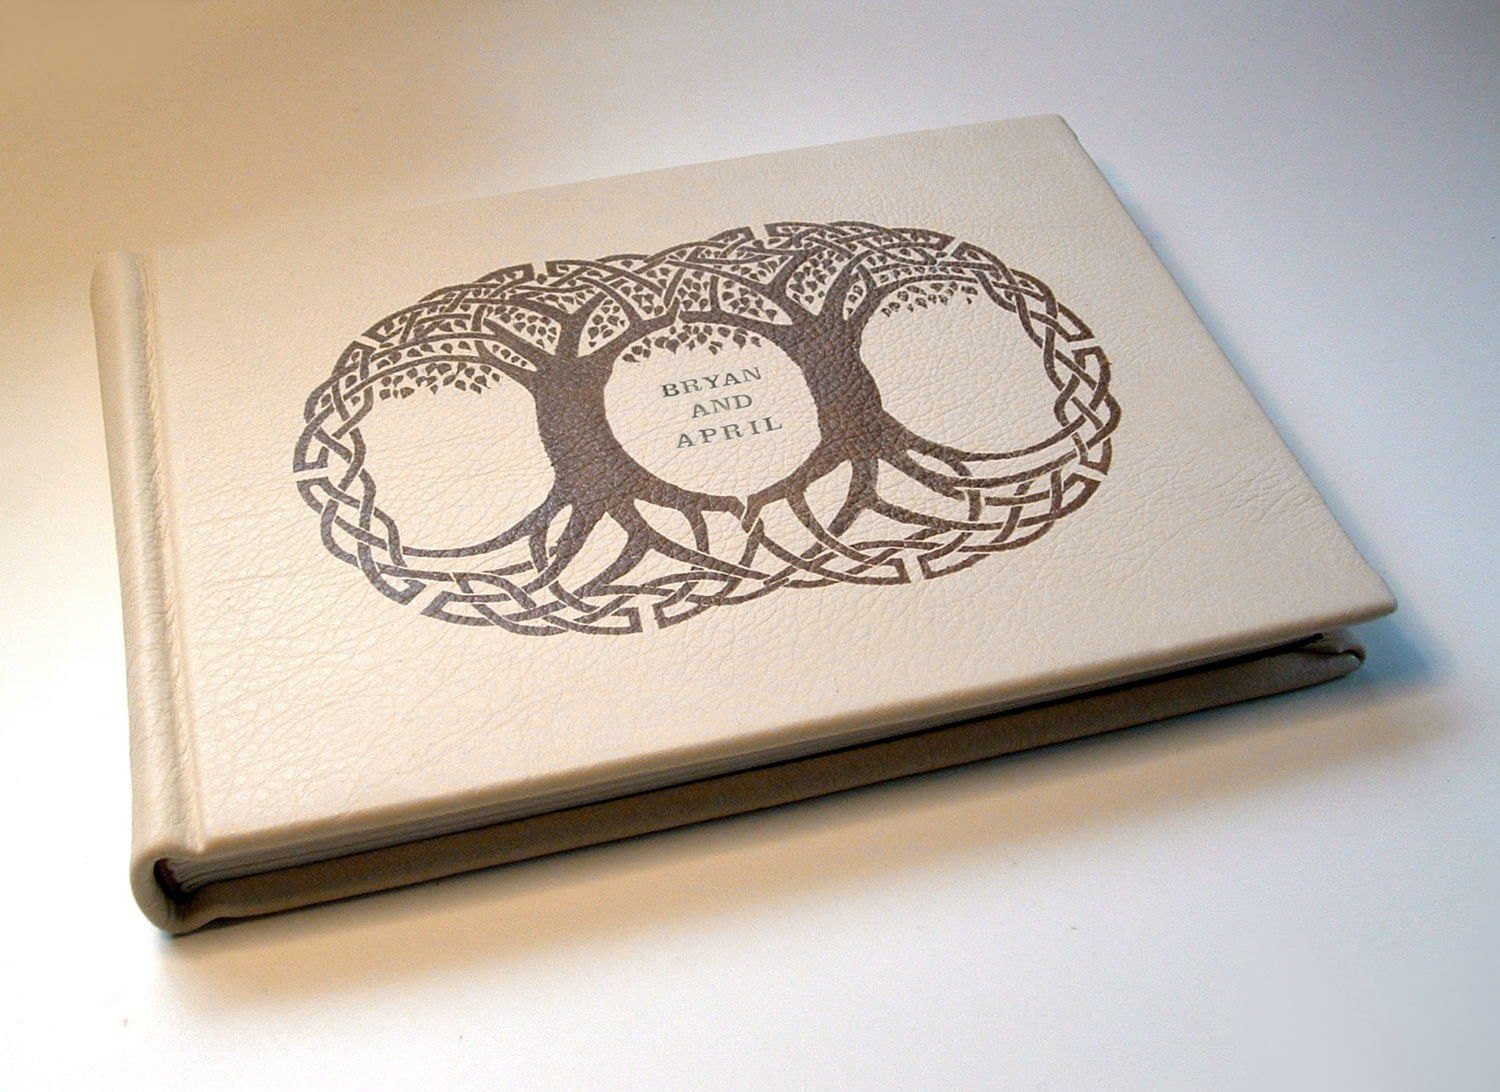 Personalized wedding album, guest register, guest book, photo album, hand-bound in soft deerskin, with original double Celtic Tree-of-Life artwork on cover.